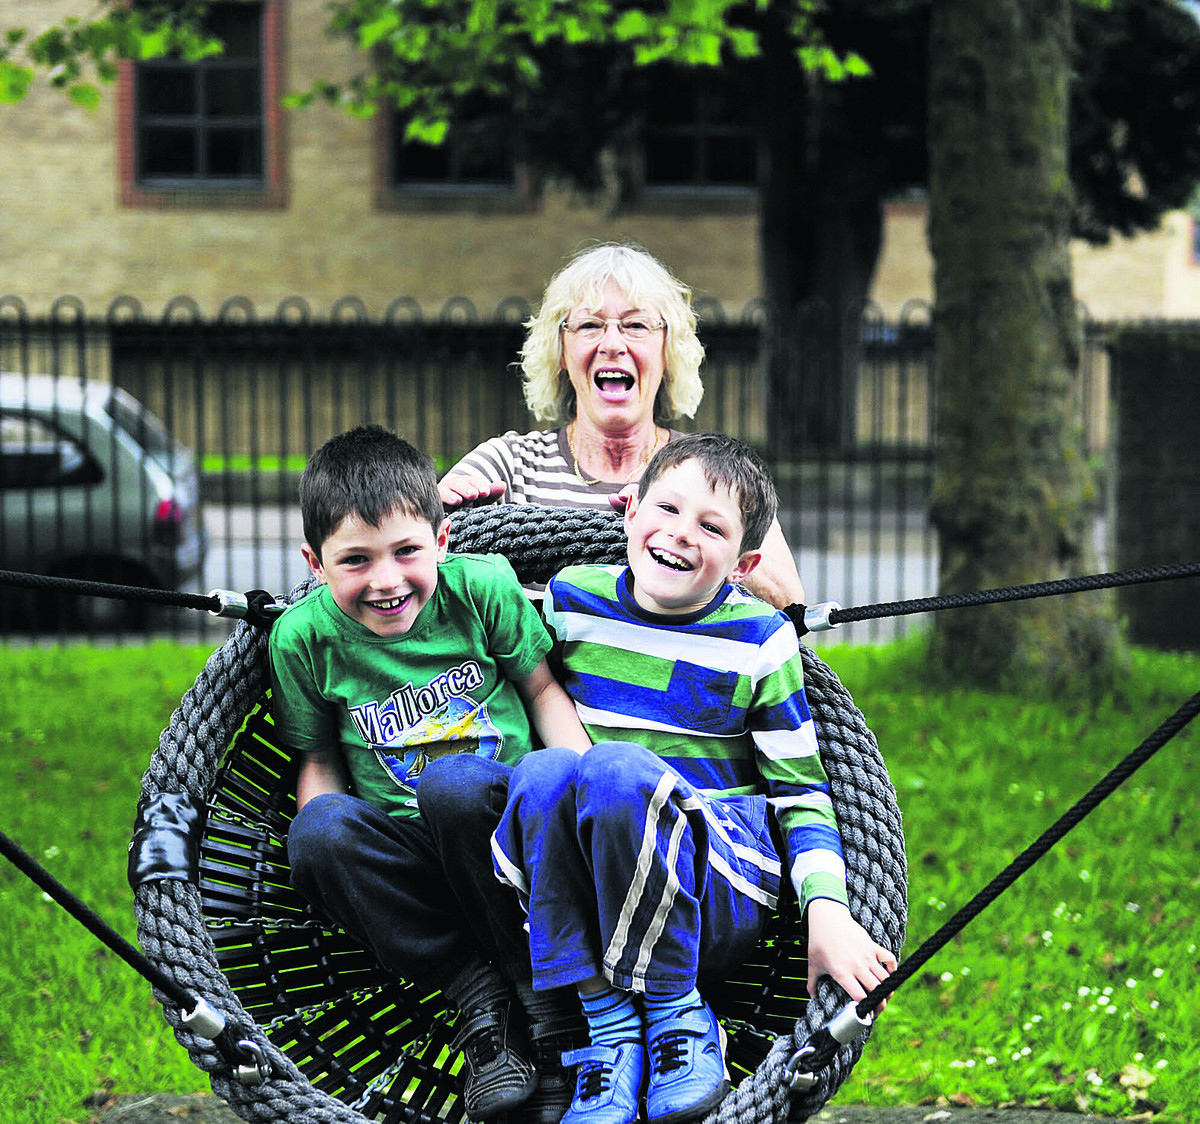 City councillor Susanna Pressel with her grandchildren Euan and Lewis Currie, aged six and eight, in the revamped Jericho play area